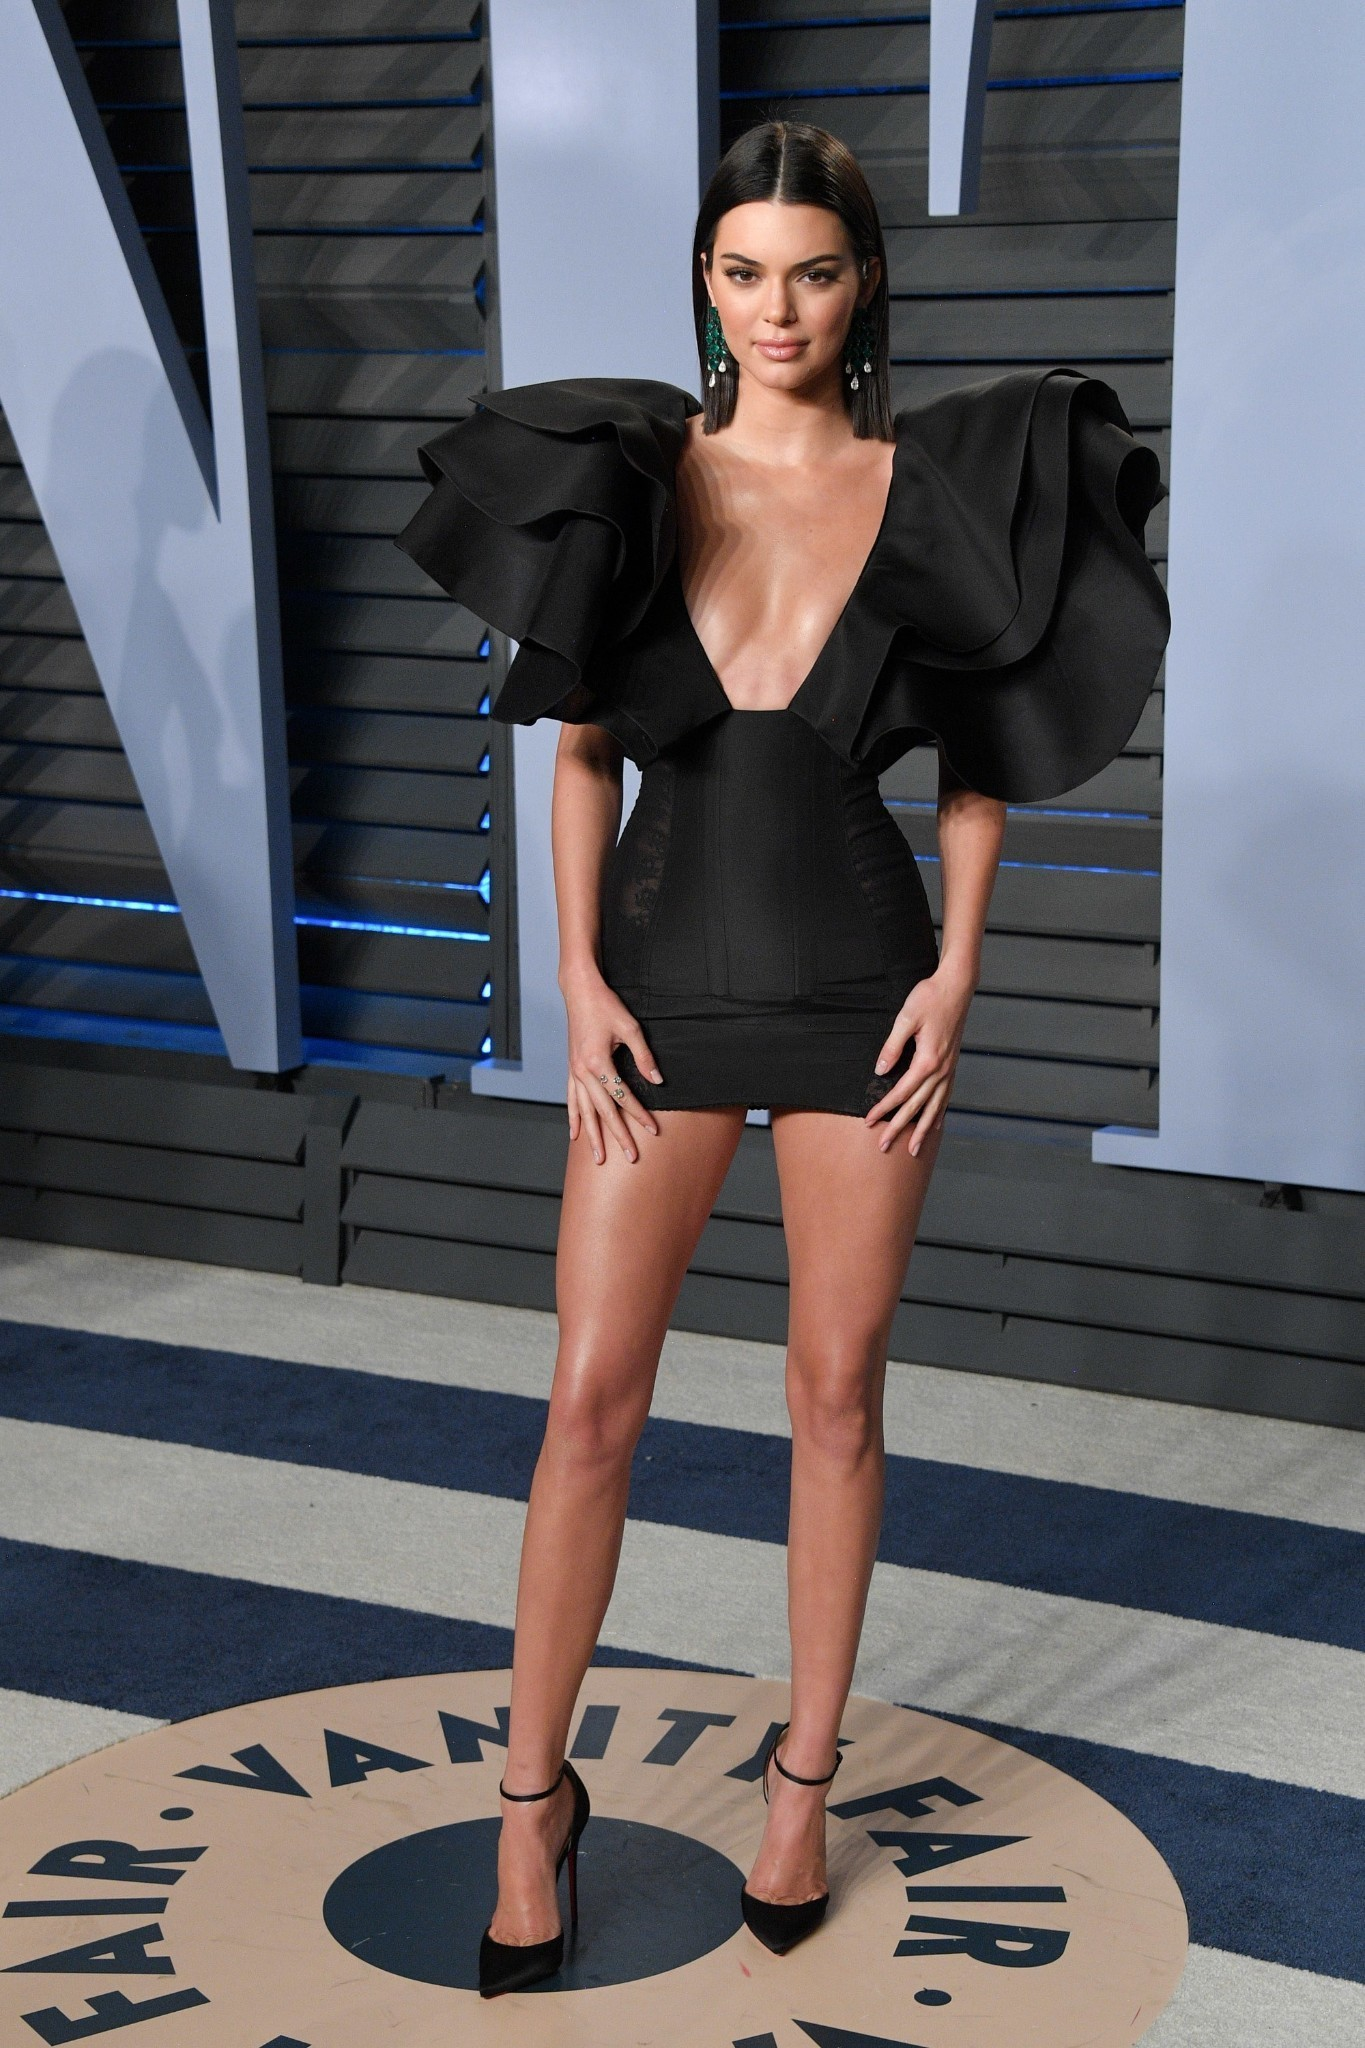 Oscars 2018: Kendall Jenner Wears Black Redemption Dress to the Vanity Fair Oscars Party